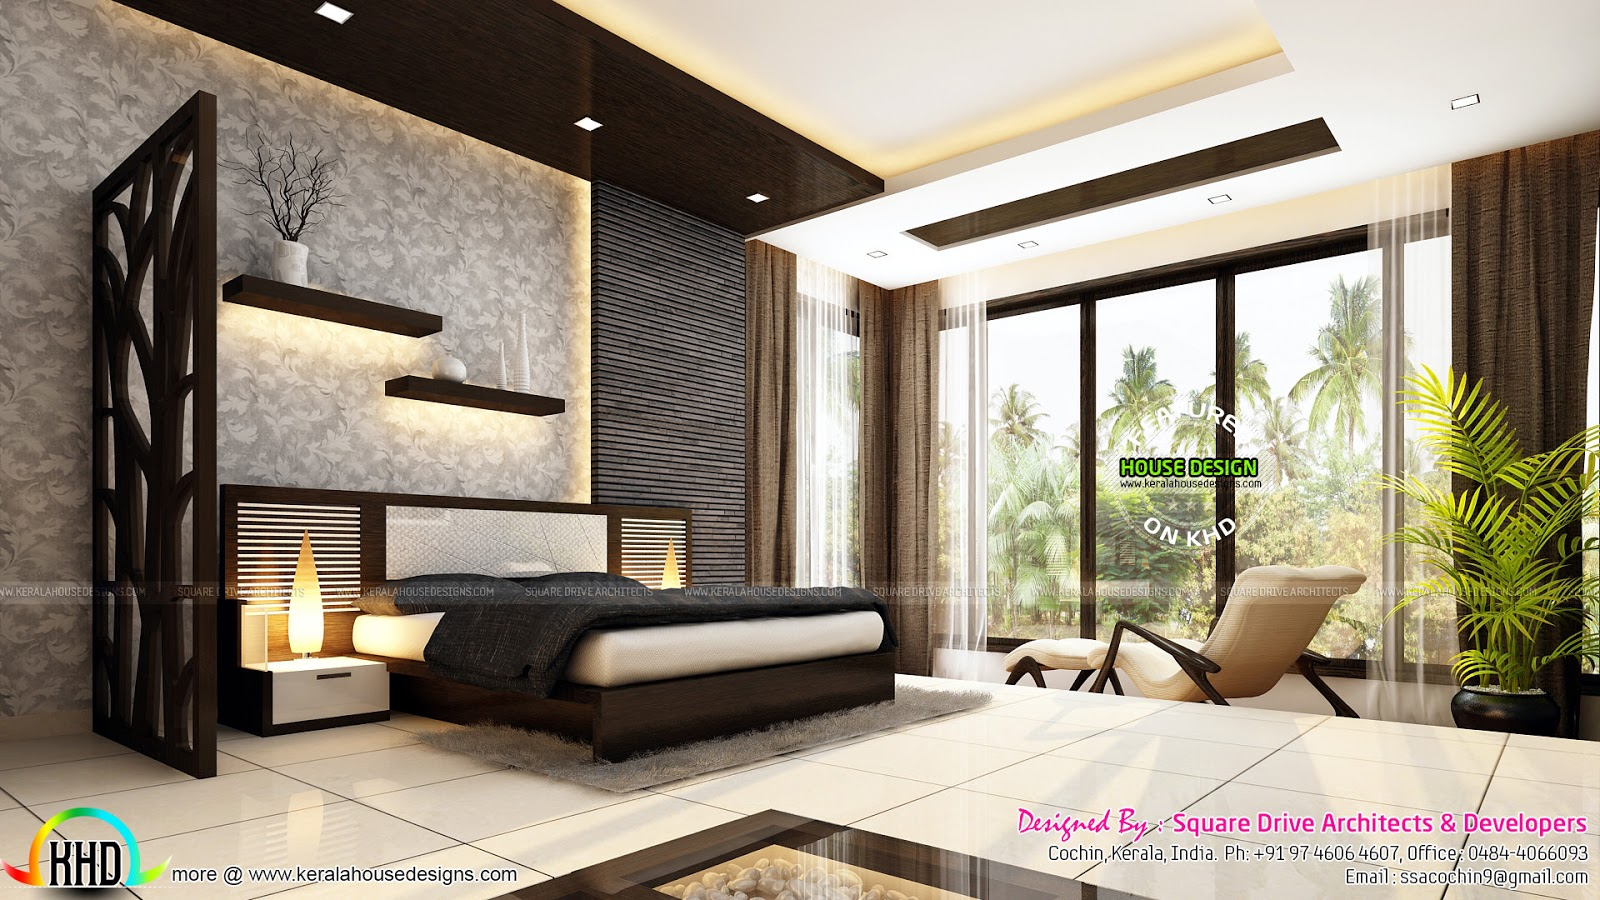 very beautiful modern interior designs kerala home design and floor plans. Black Bedroom Furniture Sets. Home Design Ideas